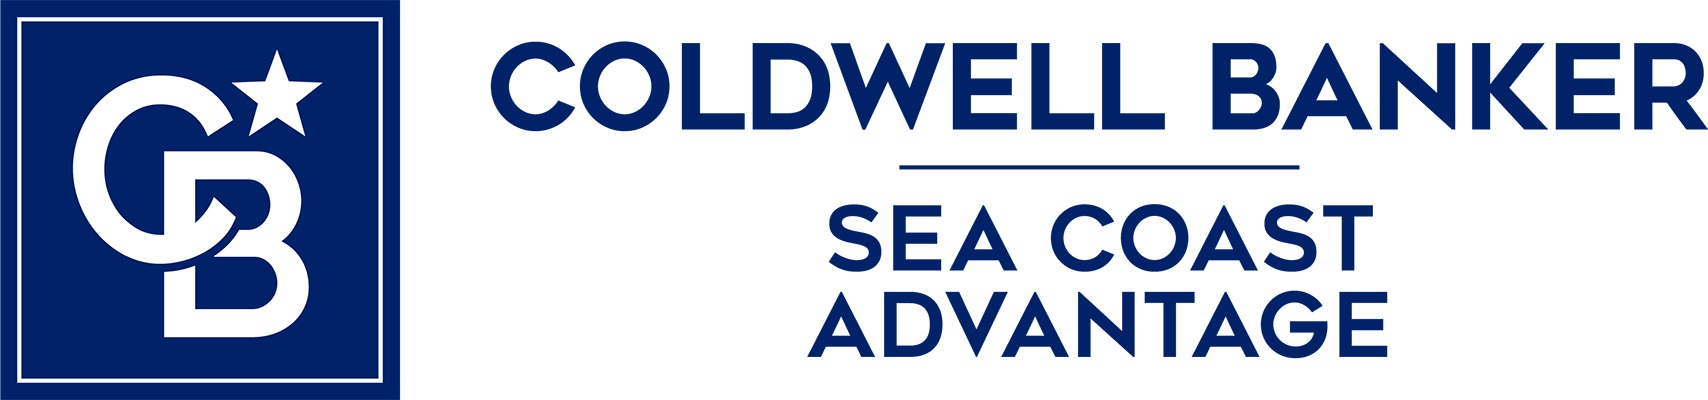 Jennifer Reinholt - Coldwell Banker Sea Coast Advantage Realty